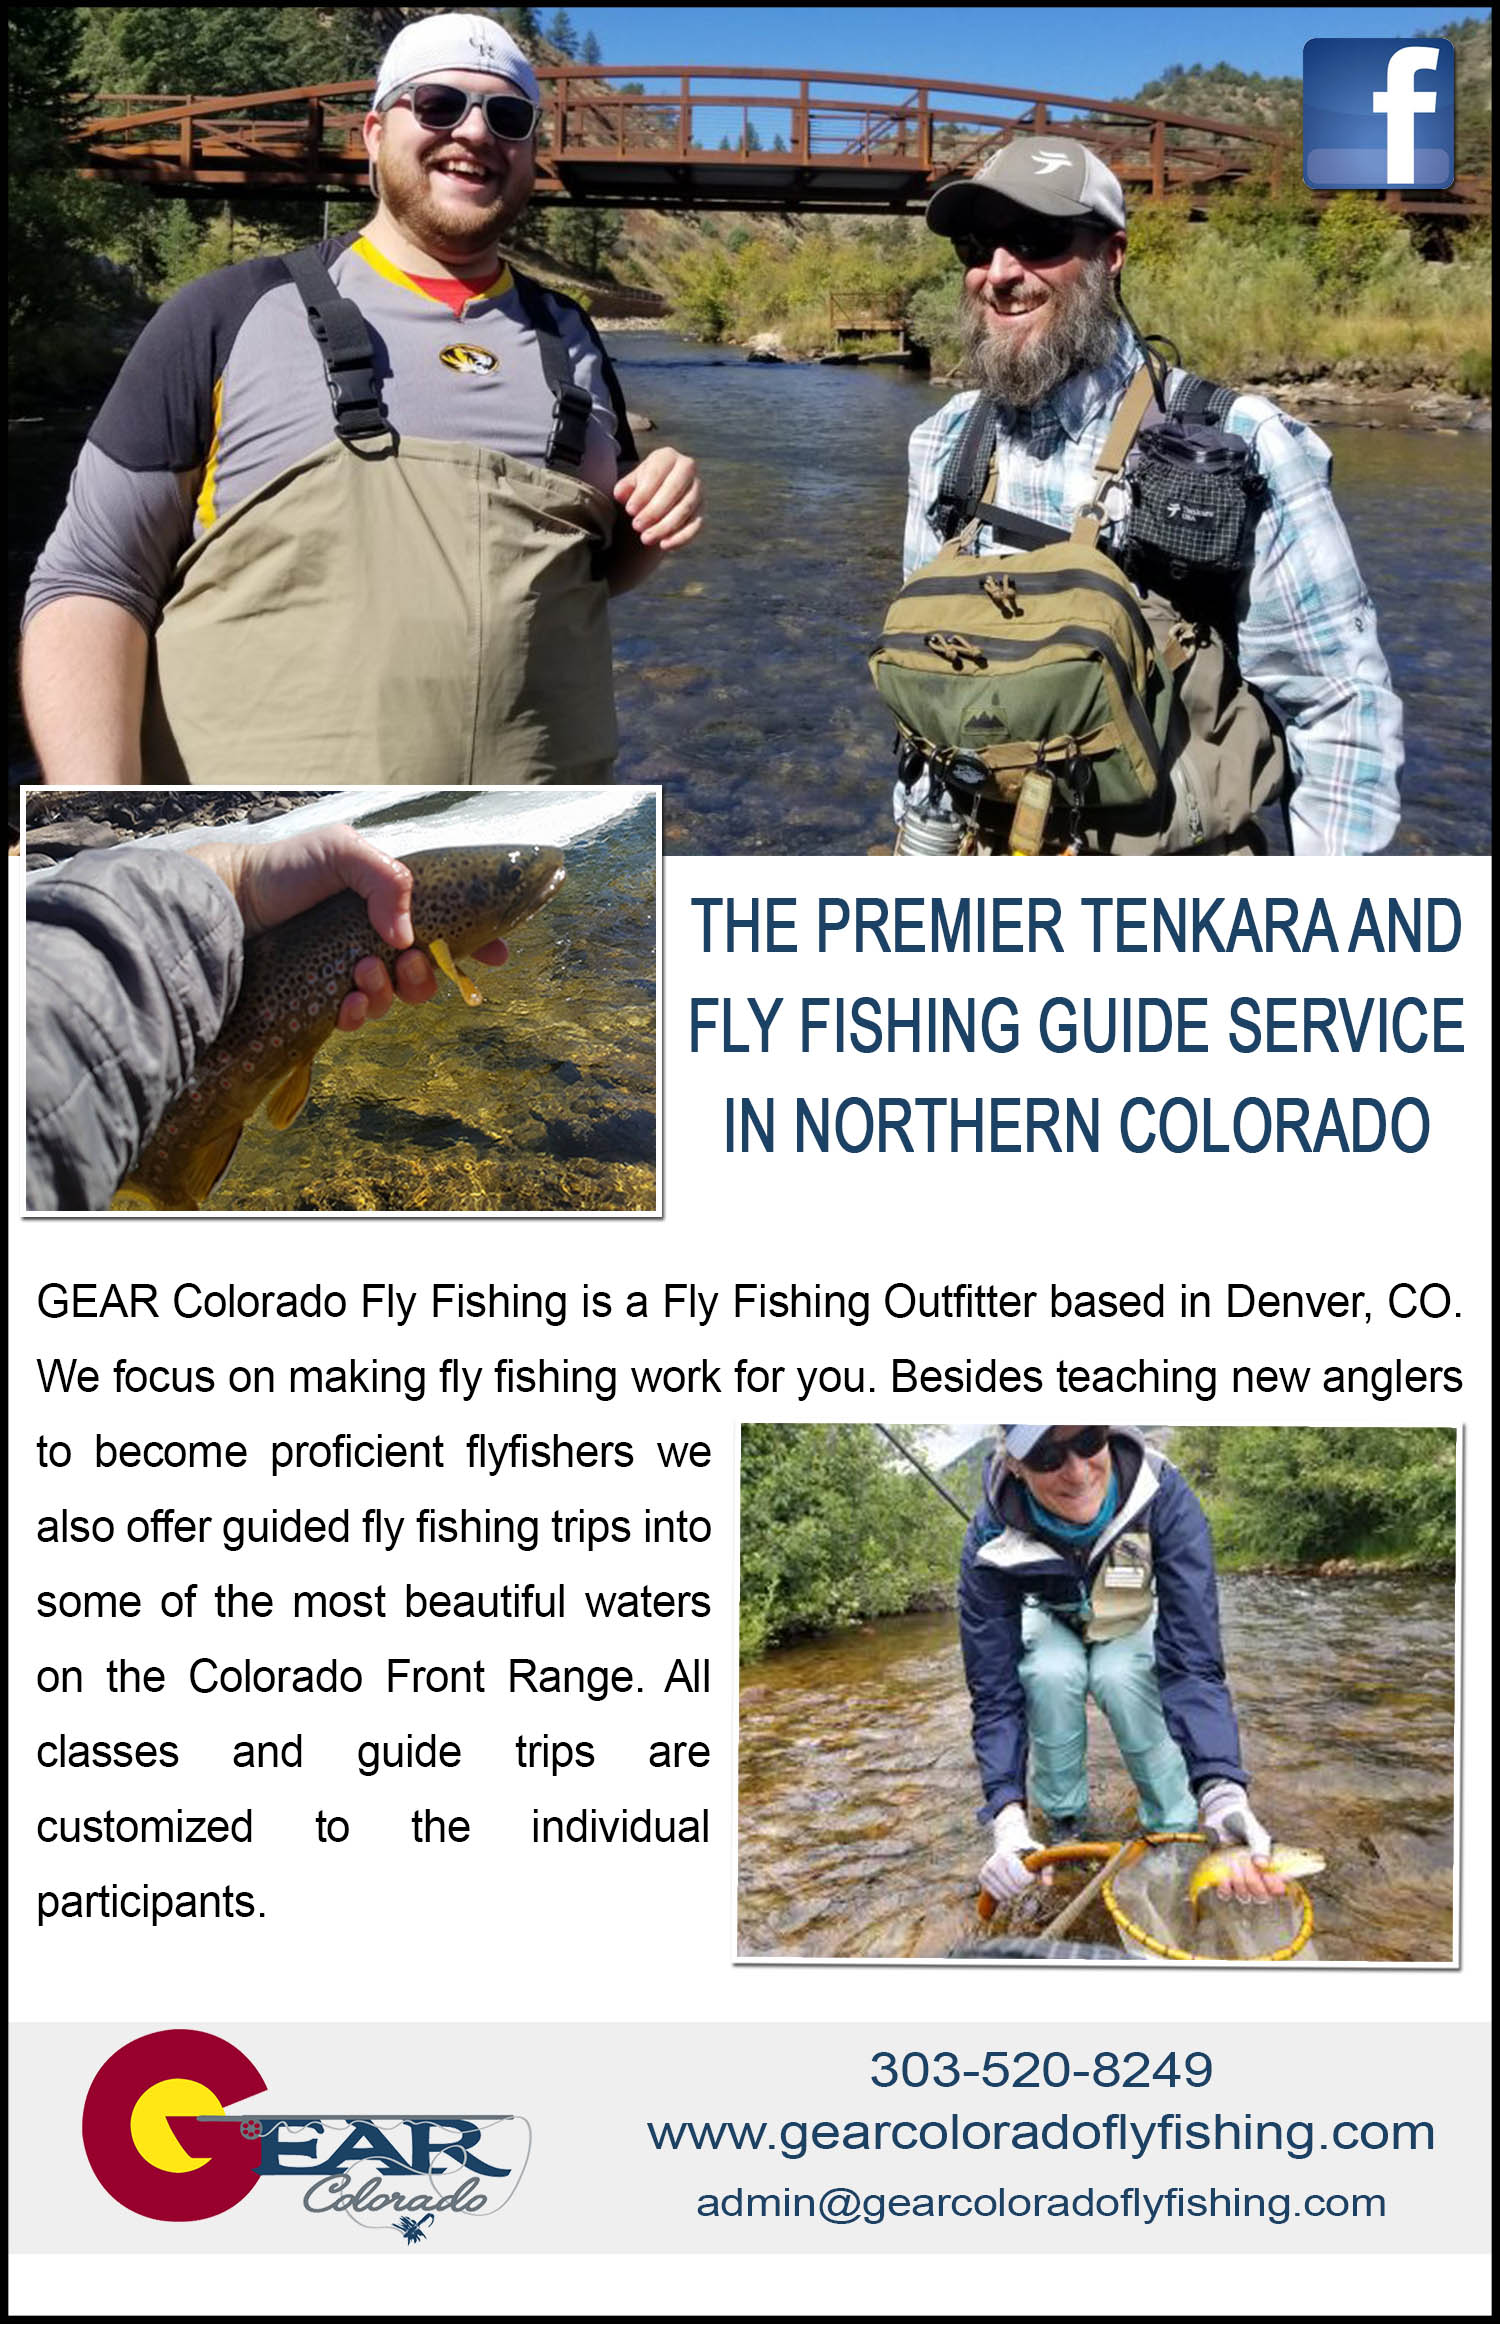 GEAR Colorado Fly Fishing